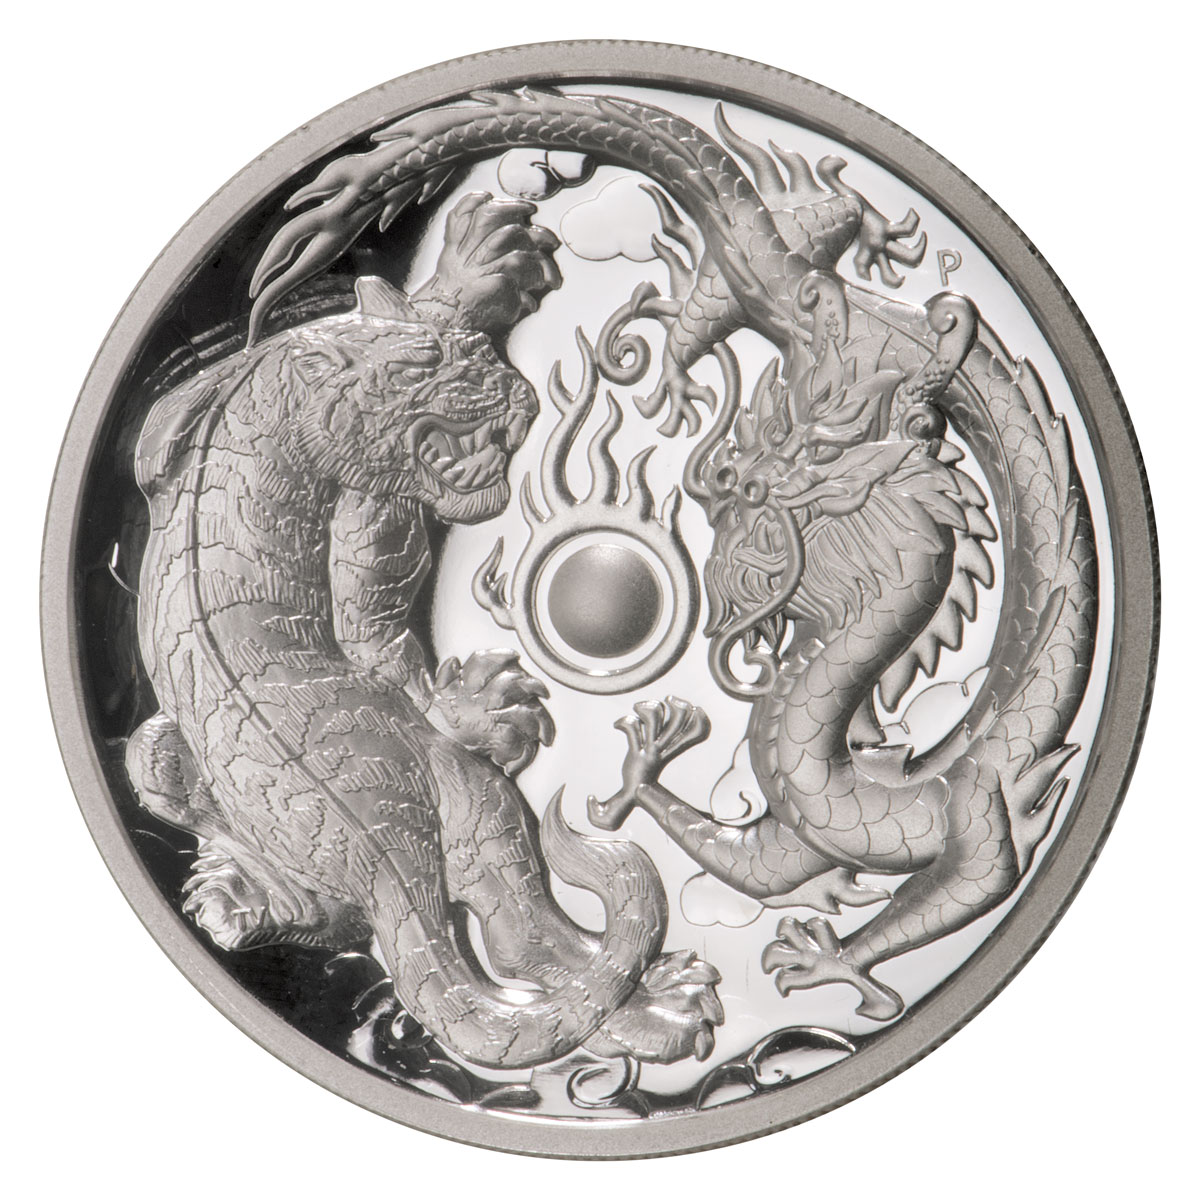 2018-P Australia 2 oz High Relief Silver Tiger & Dragon Proof $2 Coin GEM Proof